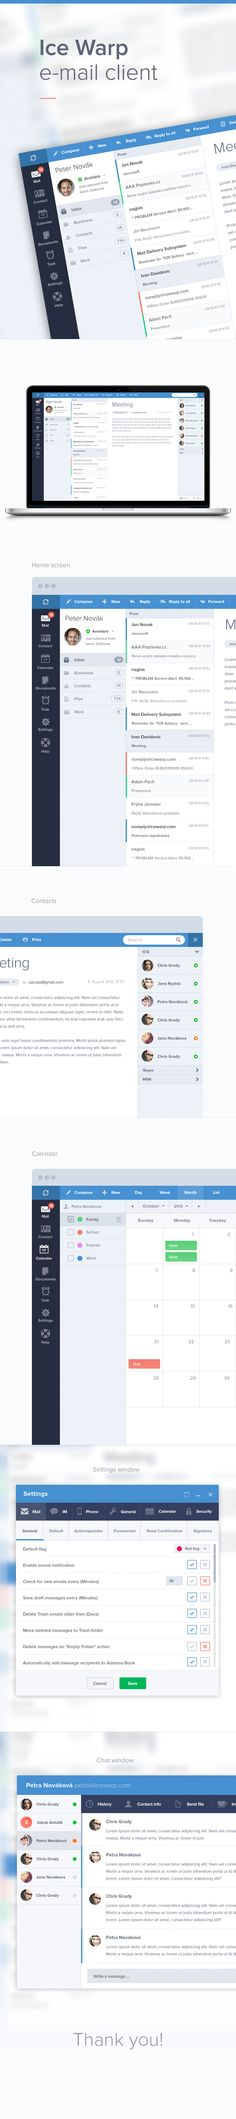 E-mail client - on @Behance: http://www.behance.net/gallery/E-mail-client/8626803